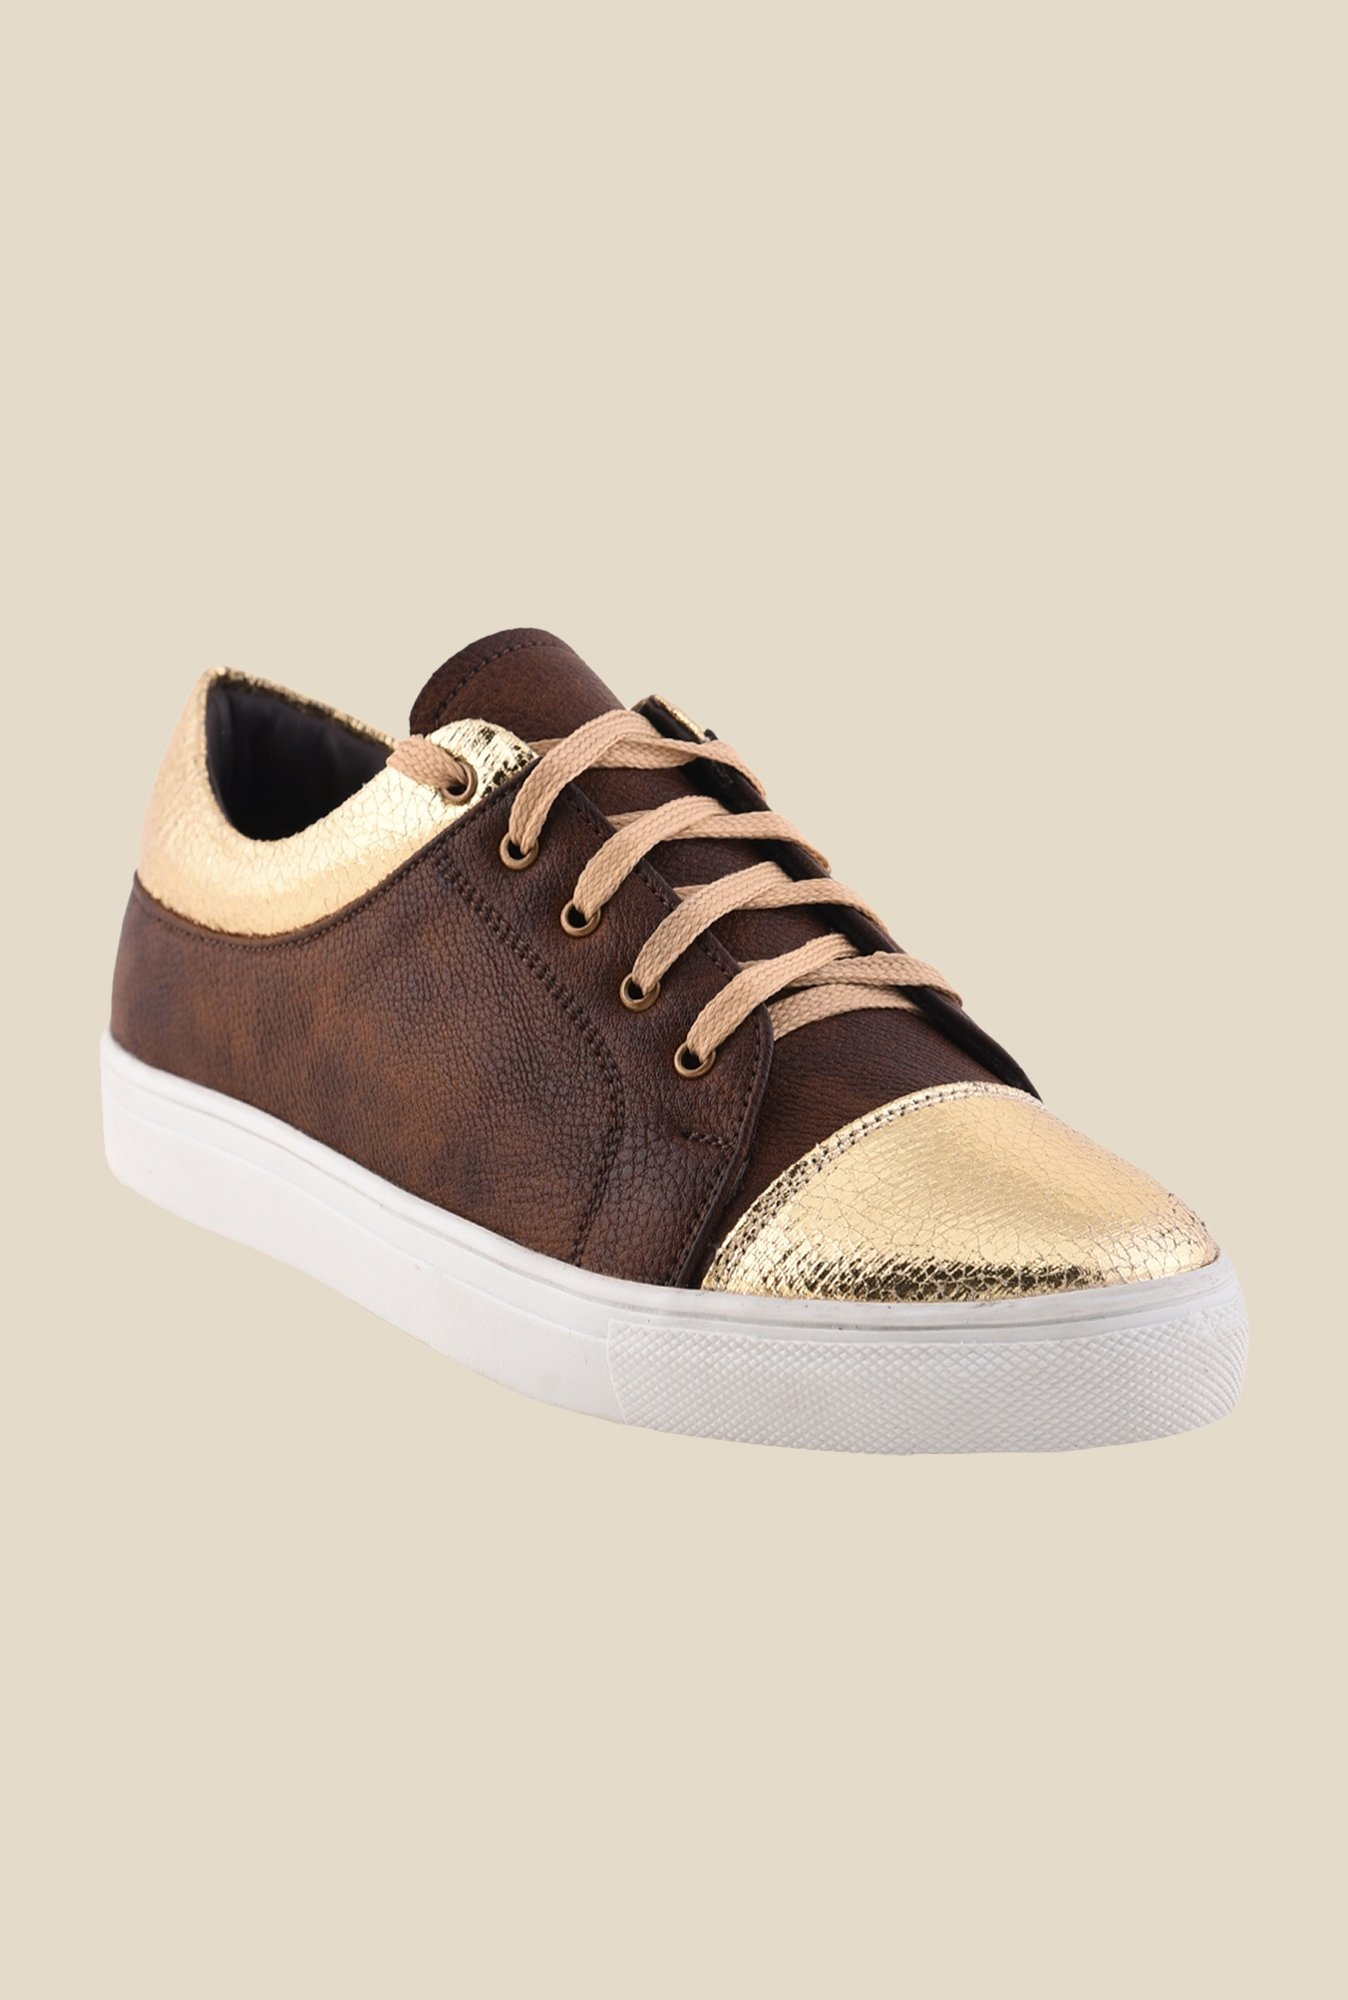 Bruno Manetti Gold & Brown Sneakers